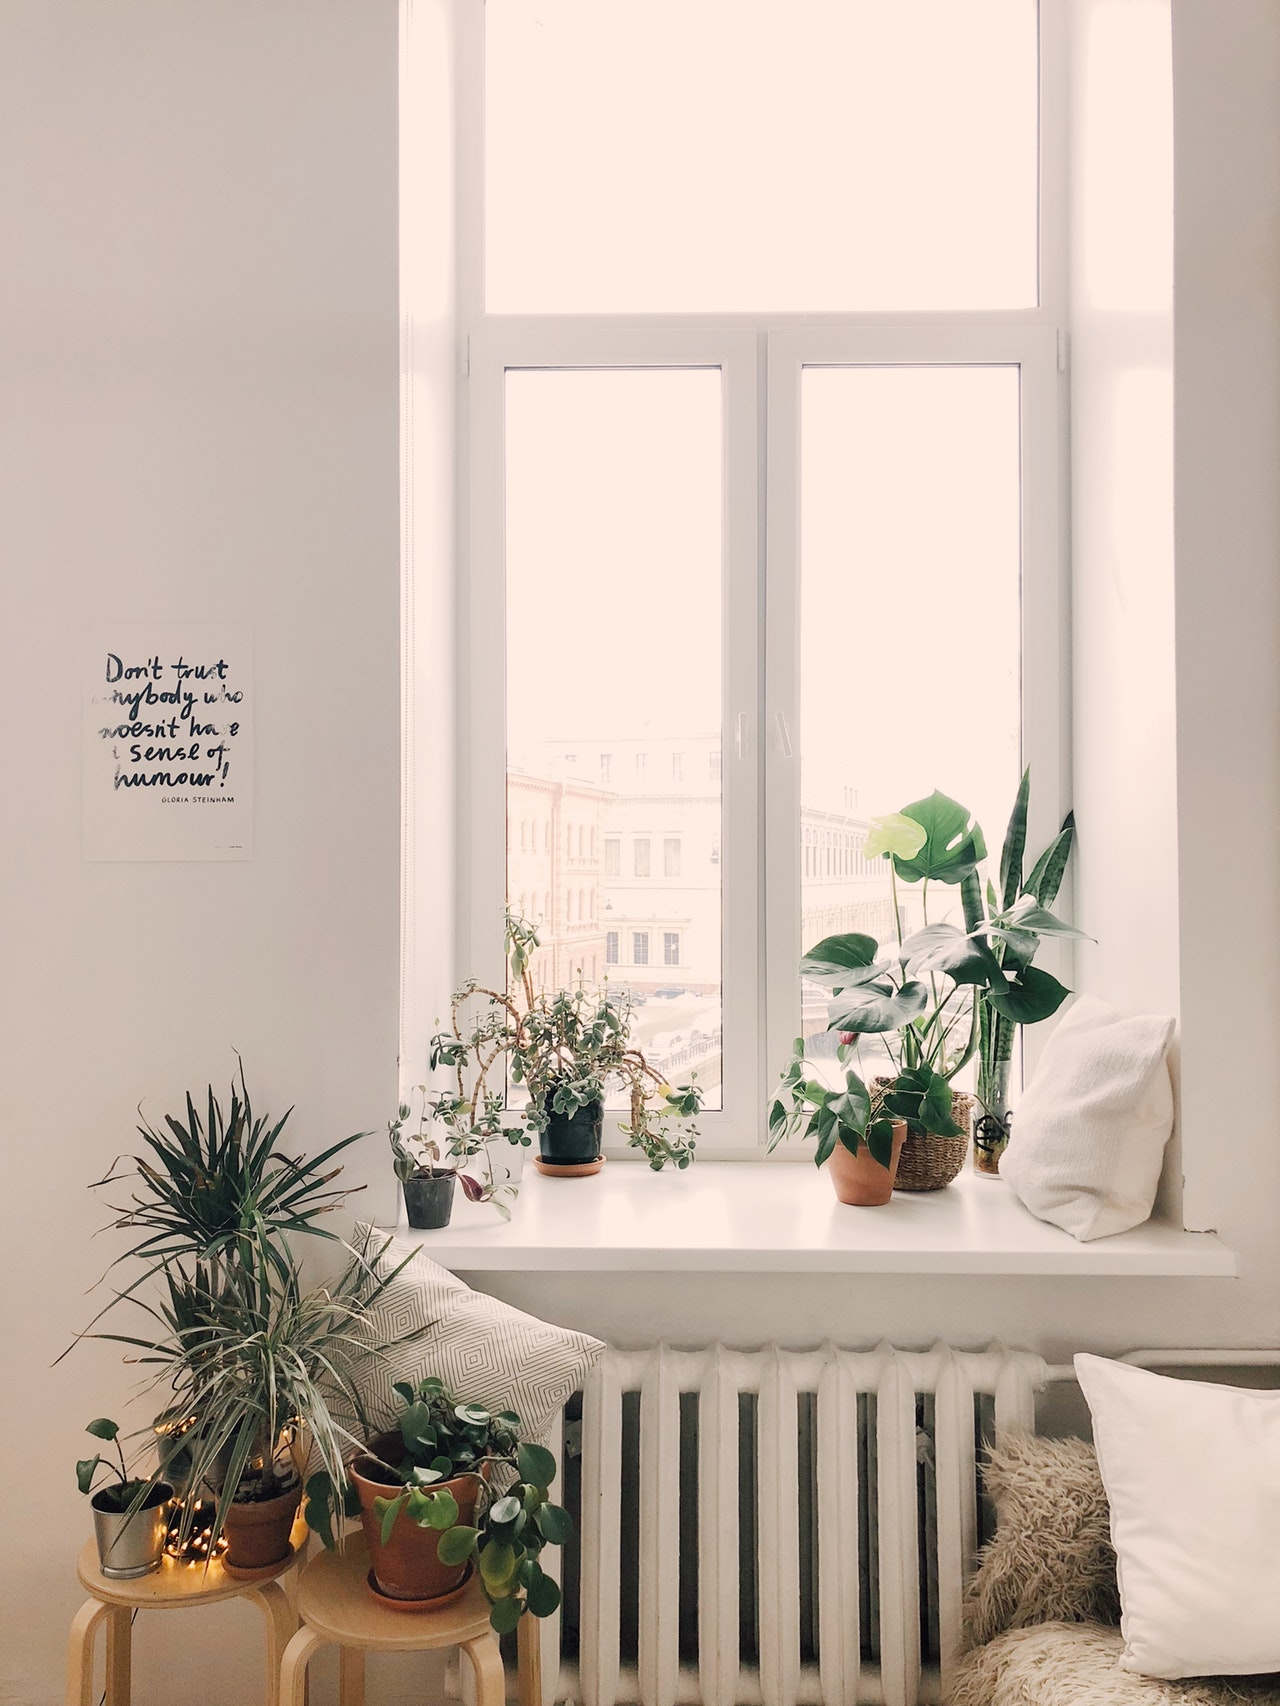 Tips on how to take care of your indoor plants